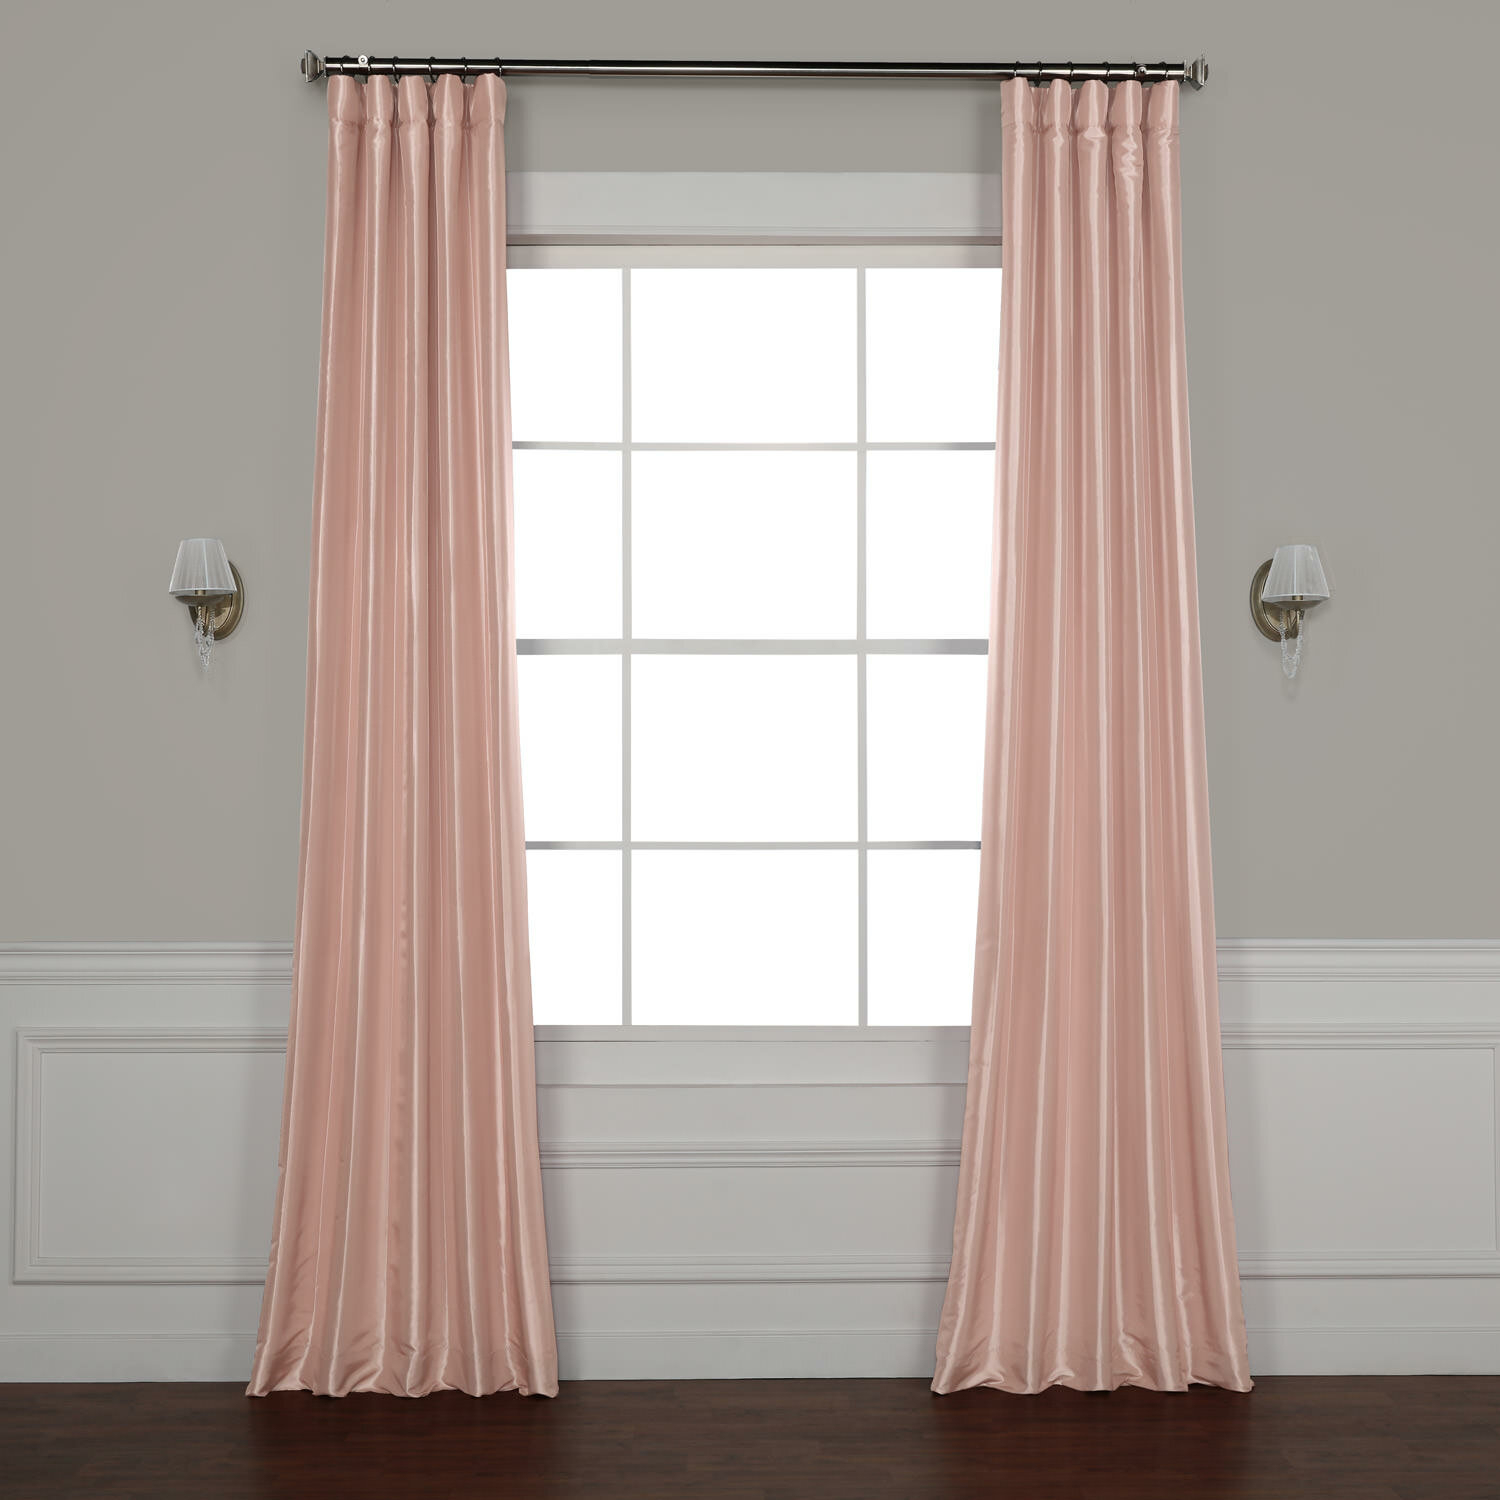 Lochleven Faux Silk Taffeta Solid Room Polyester Darkening Single Curtain Panel Pertaining To Solid Faux Silk Taffeta Graphite Single Curtain Panels (View 24 of 30)